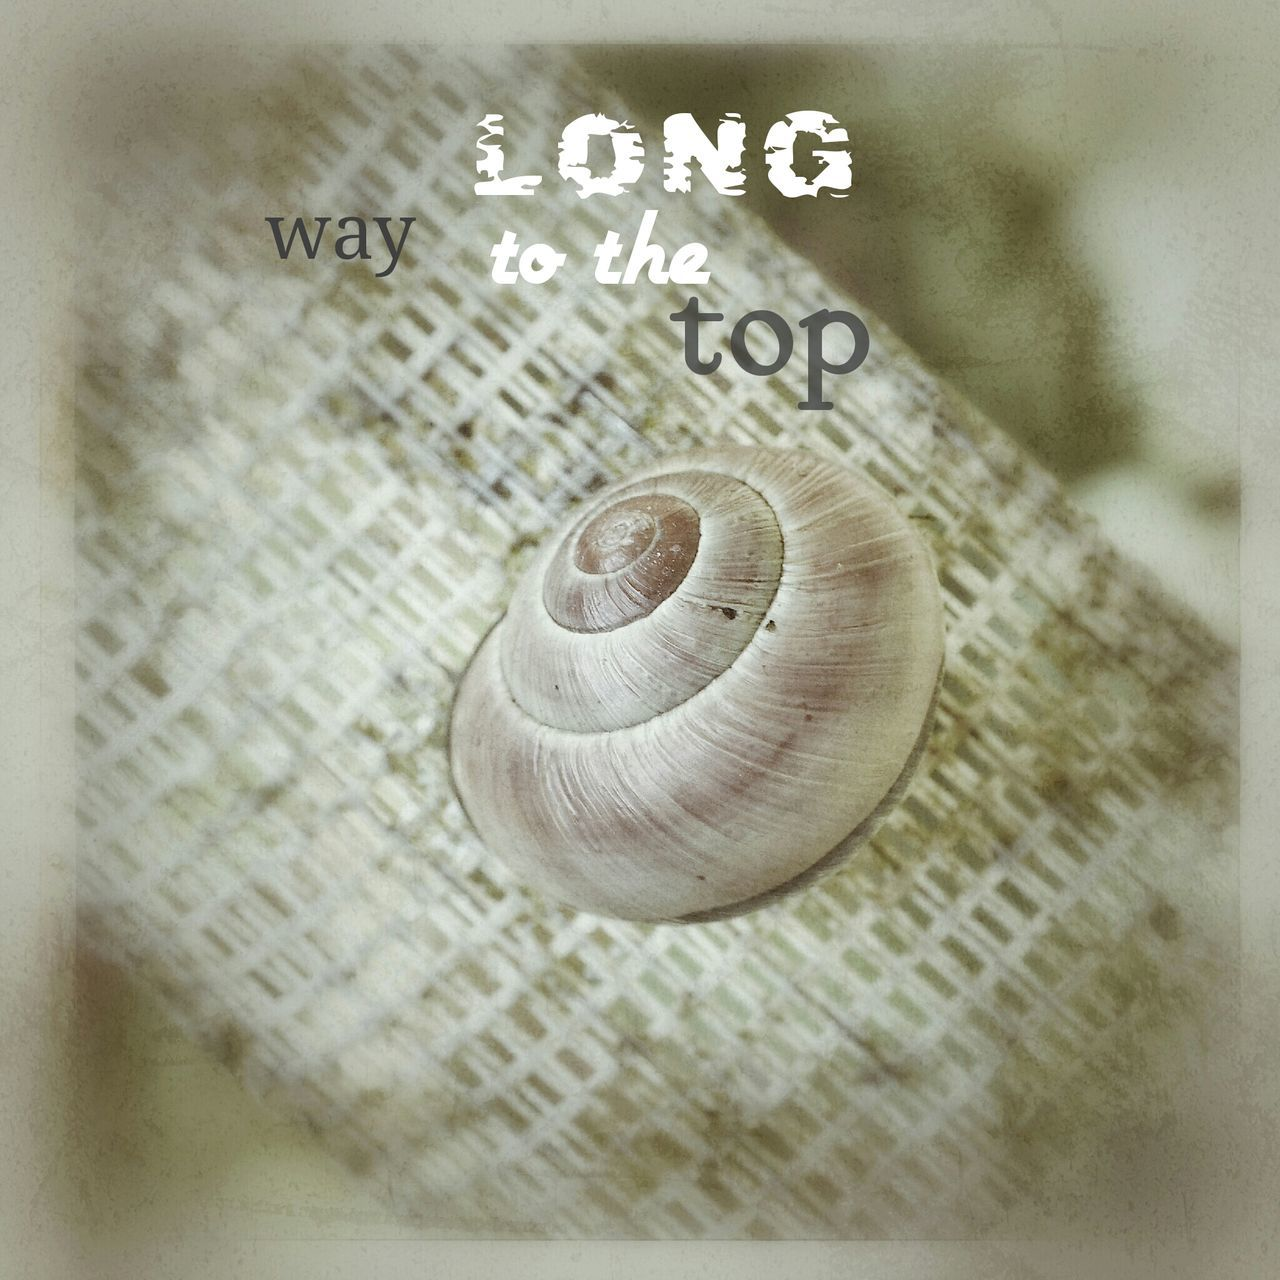 snail, no people, text, animal themes, close-up, one animal, indoors, nature, day